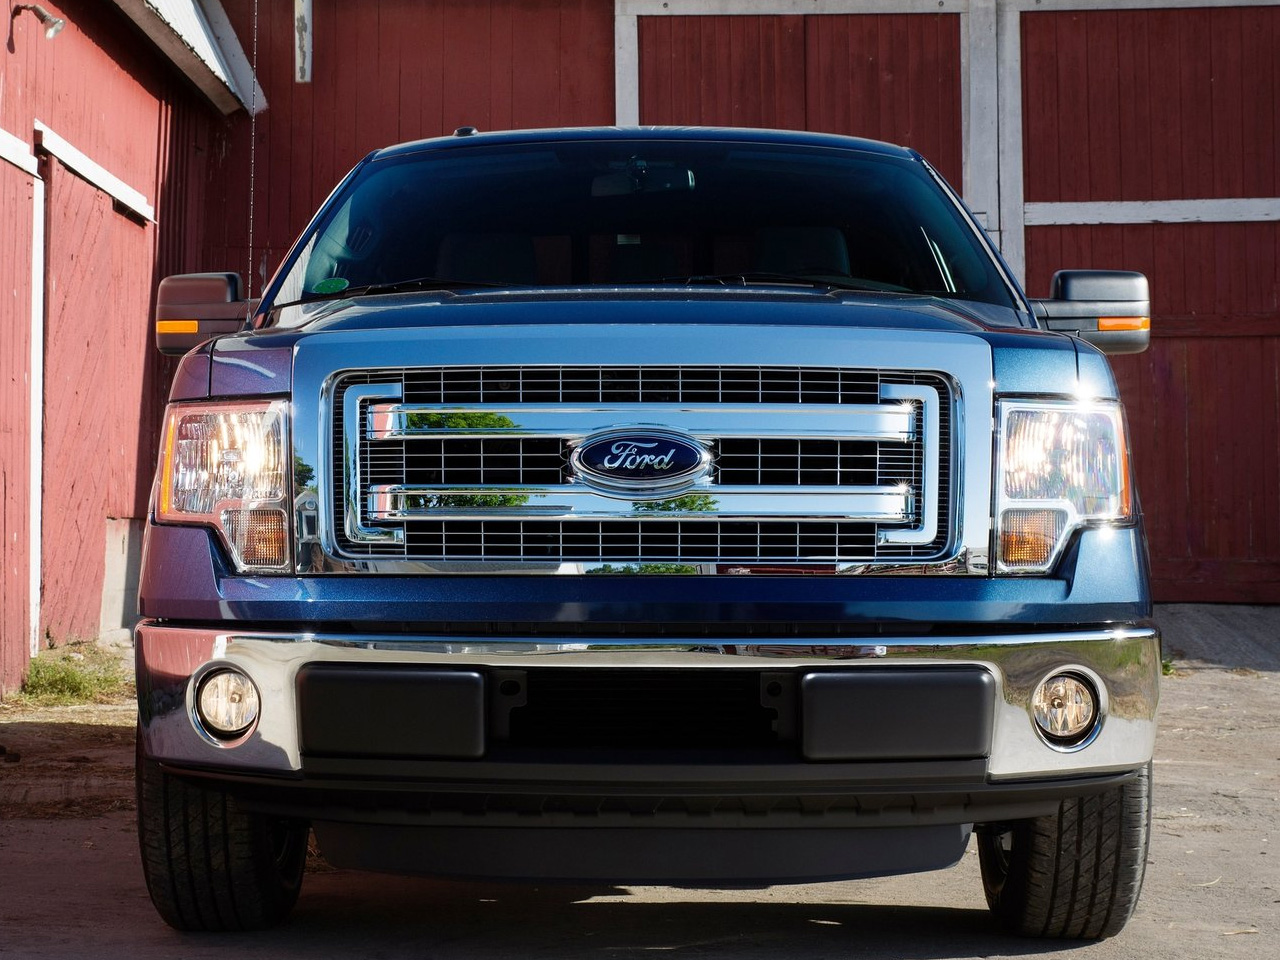 http://fordf150blog.com/wp-content/uploads/2012/12/2013-Ford-F-150-Front.jpg